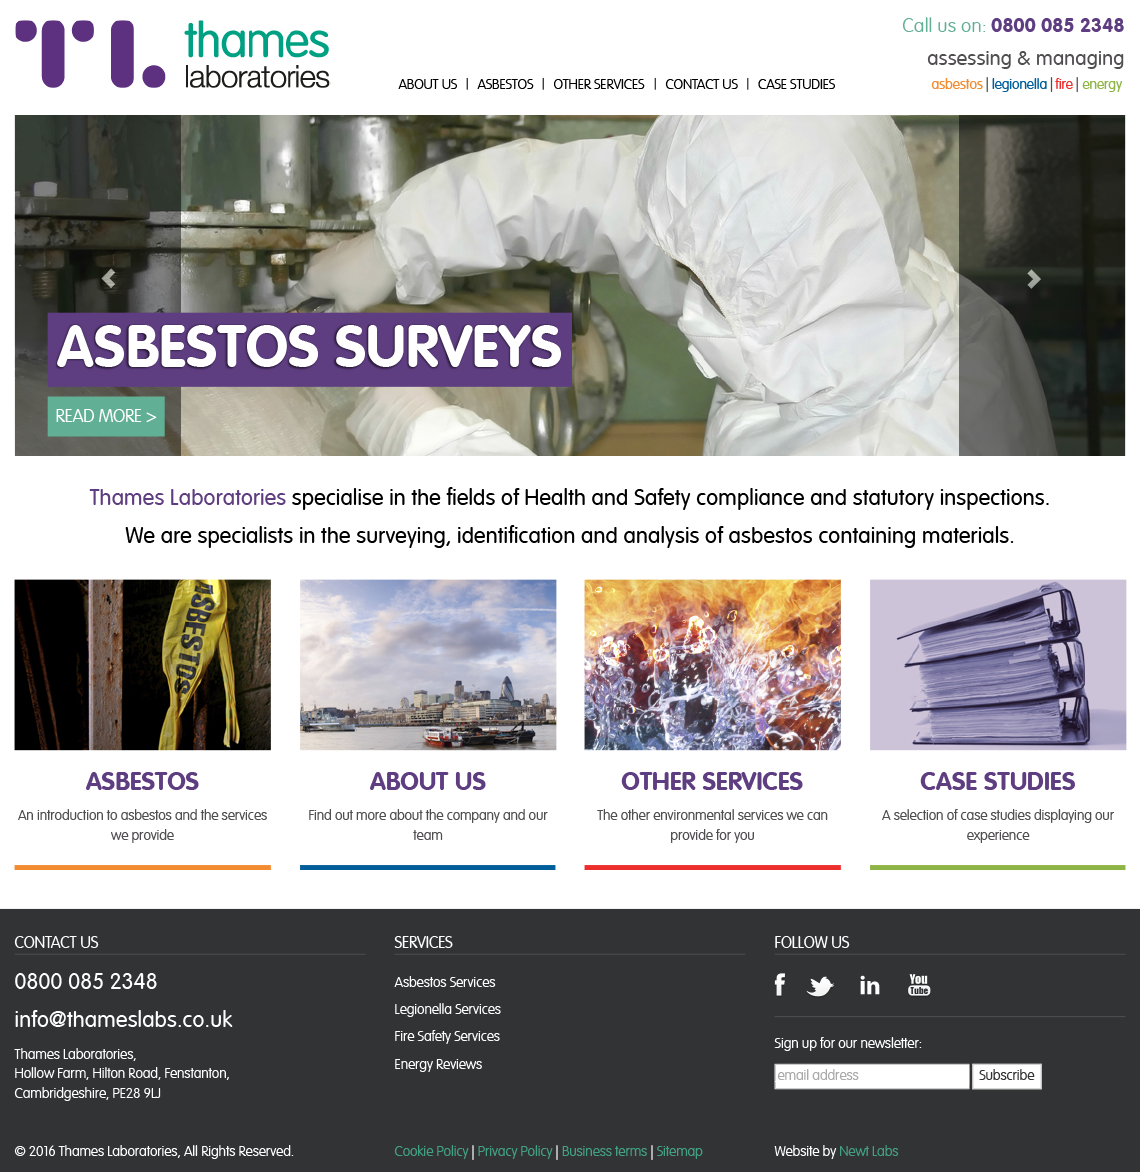 thames labs website design